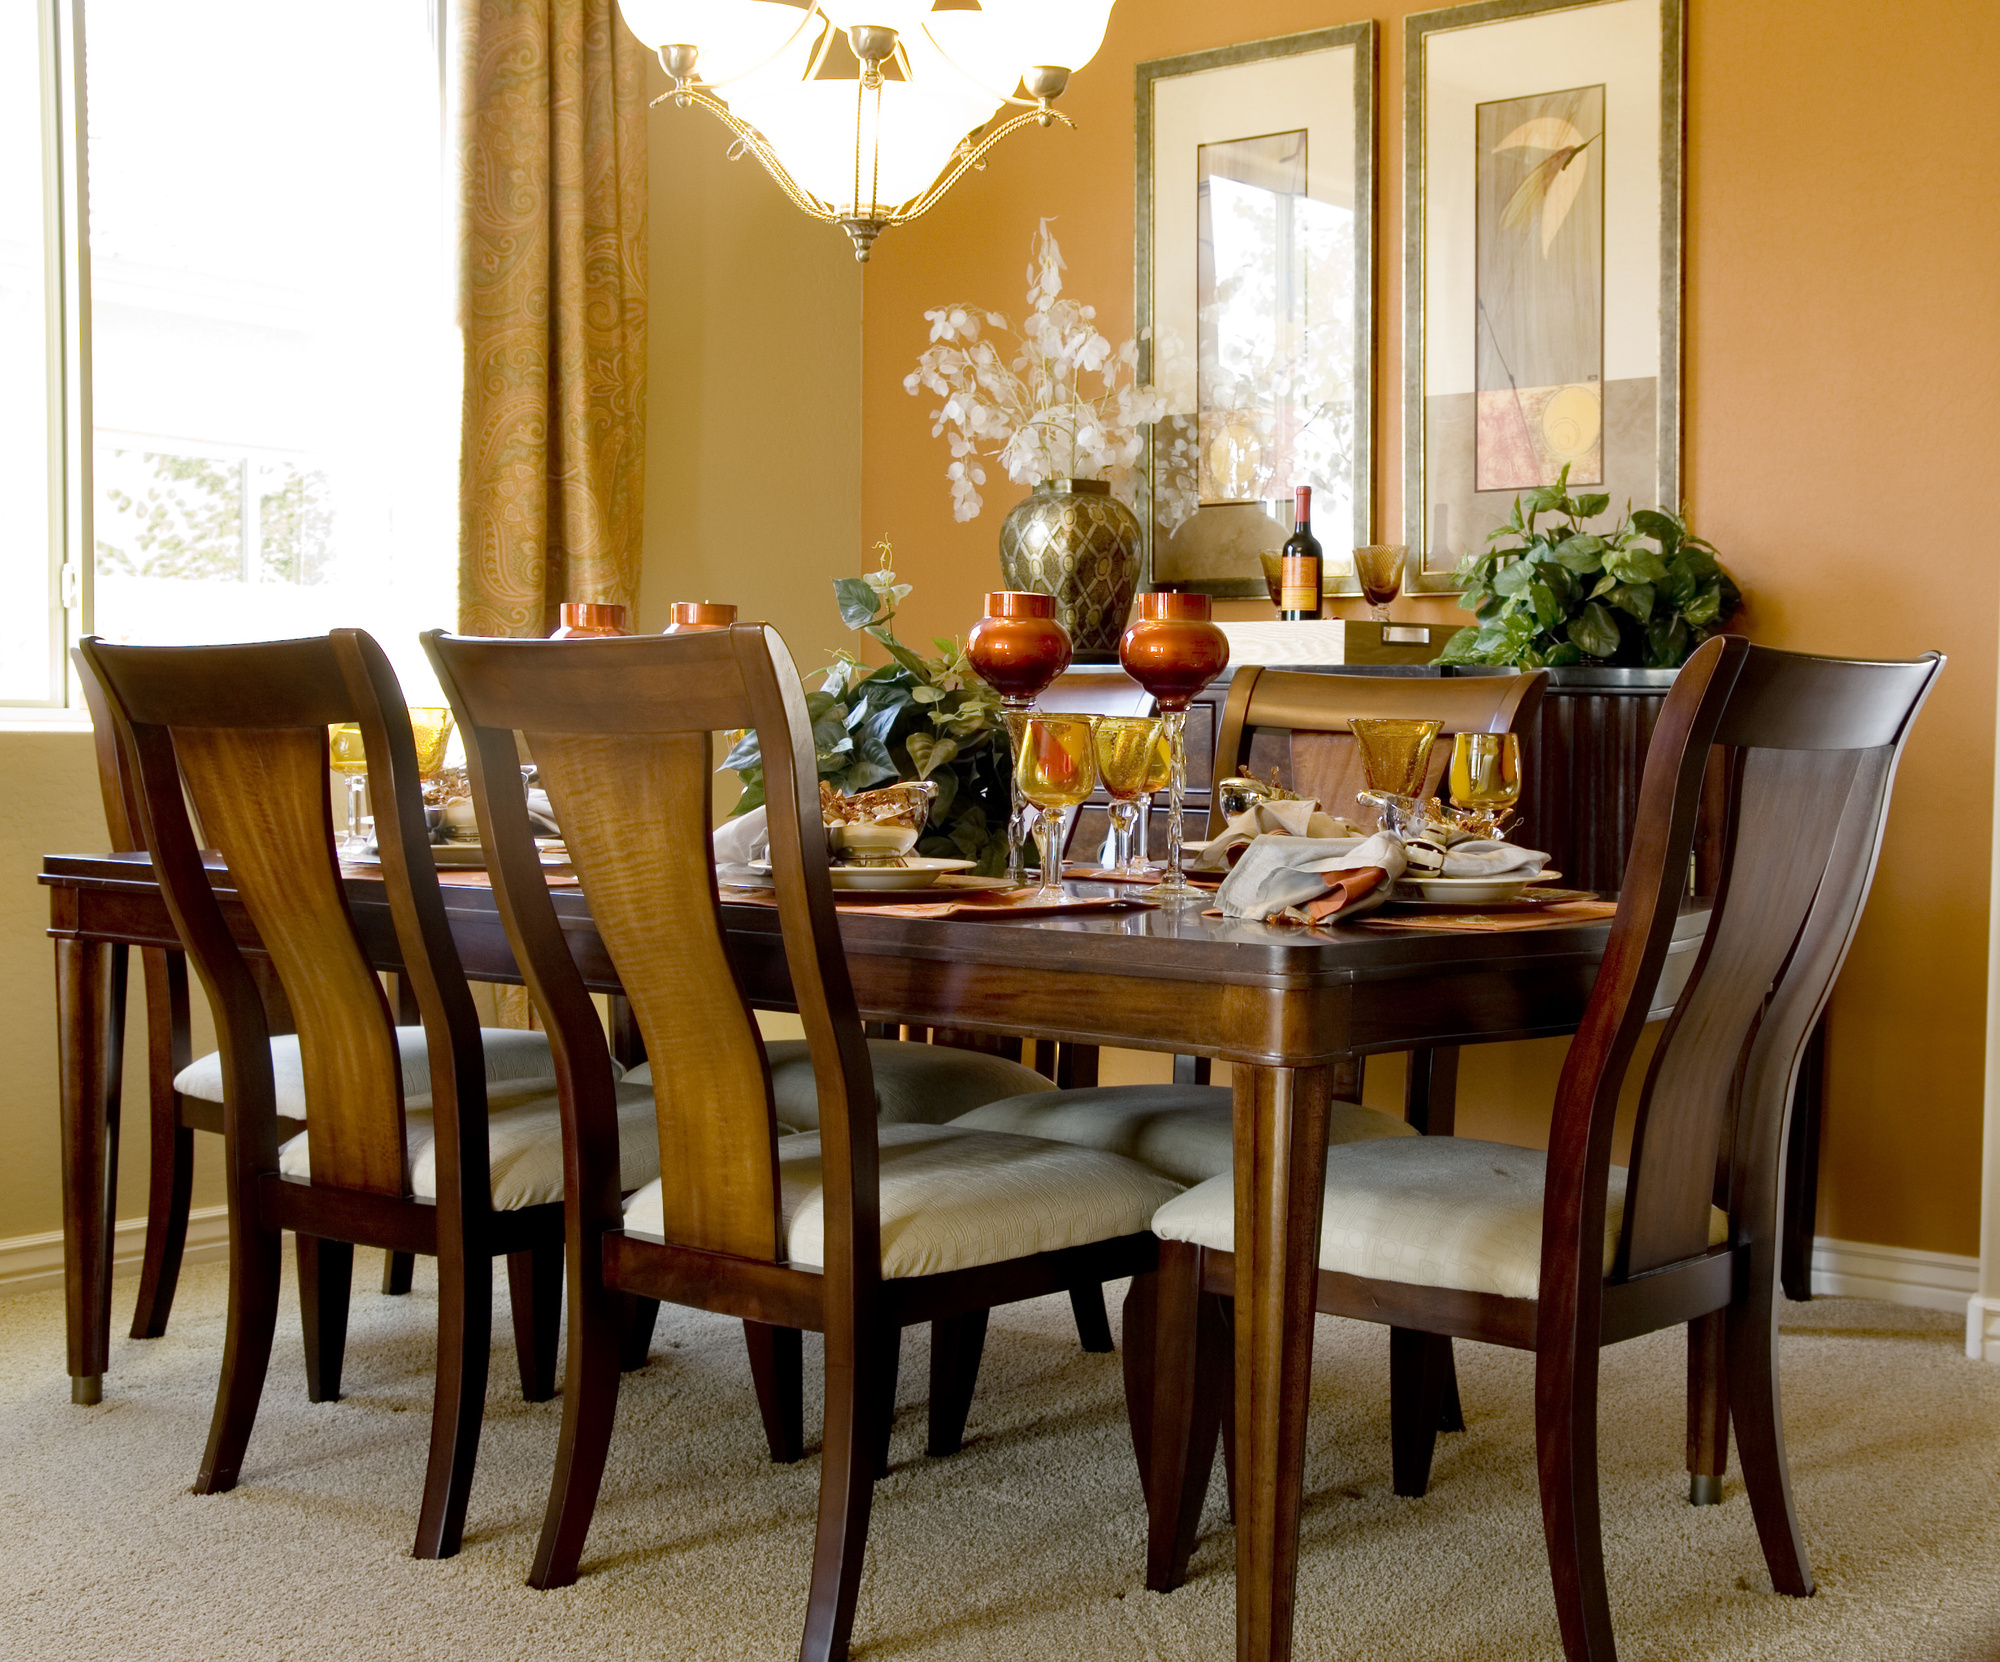 5 Dining Room Decoration Mistakes to Avoid for New Homeowners